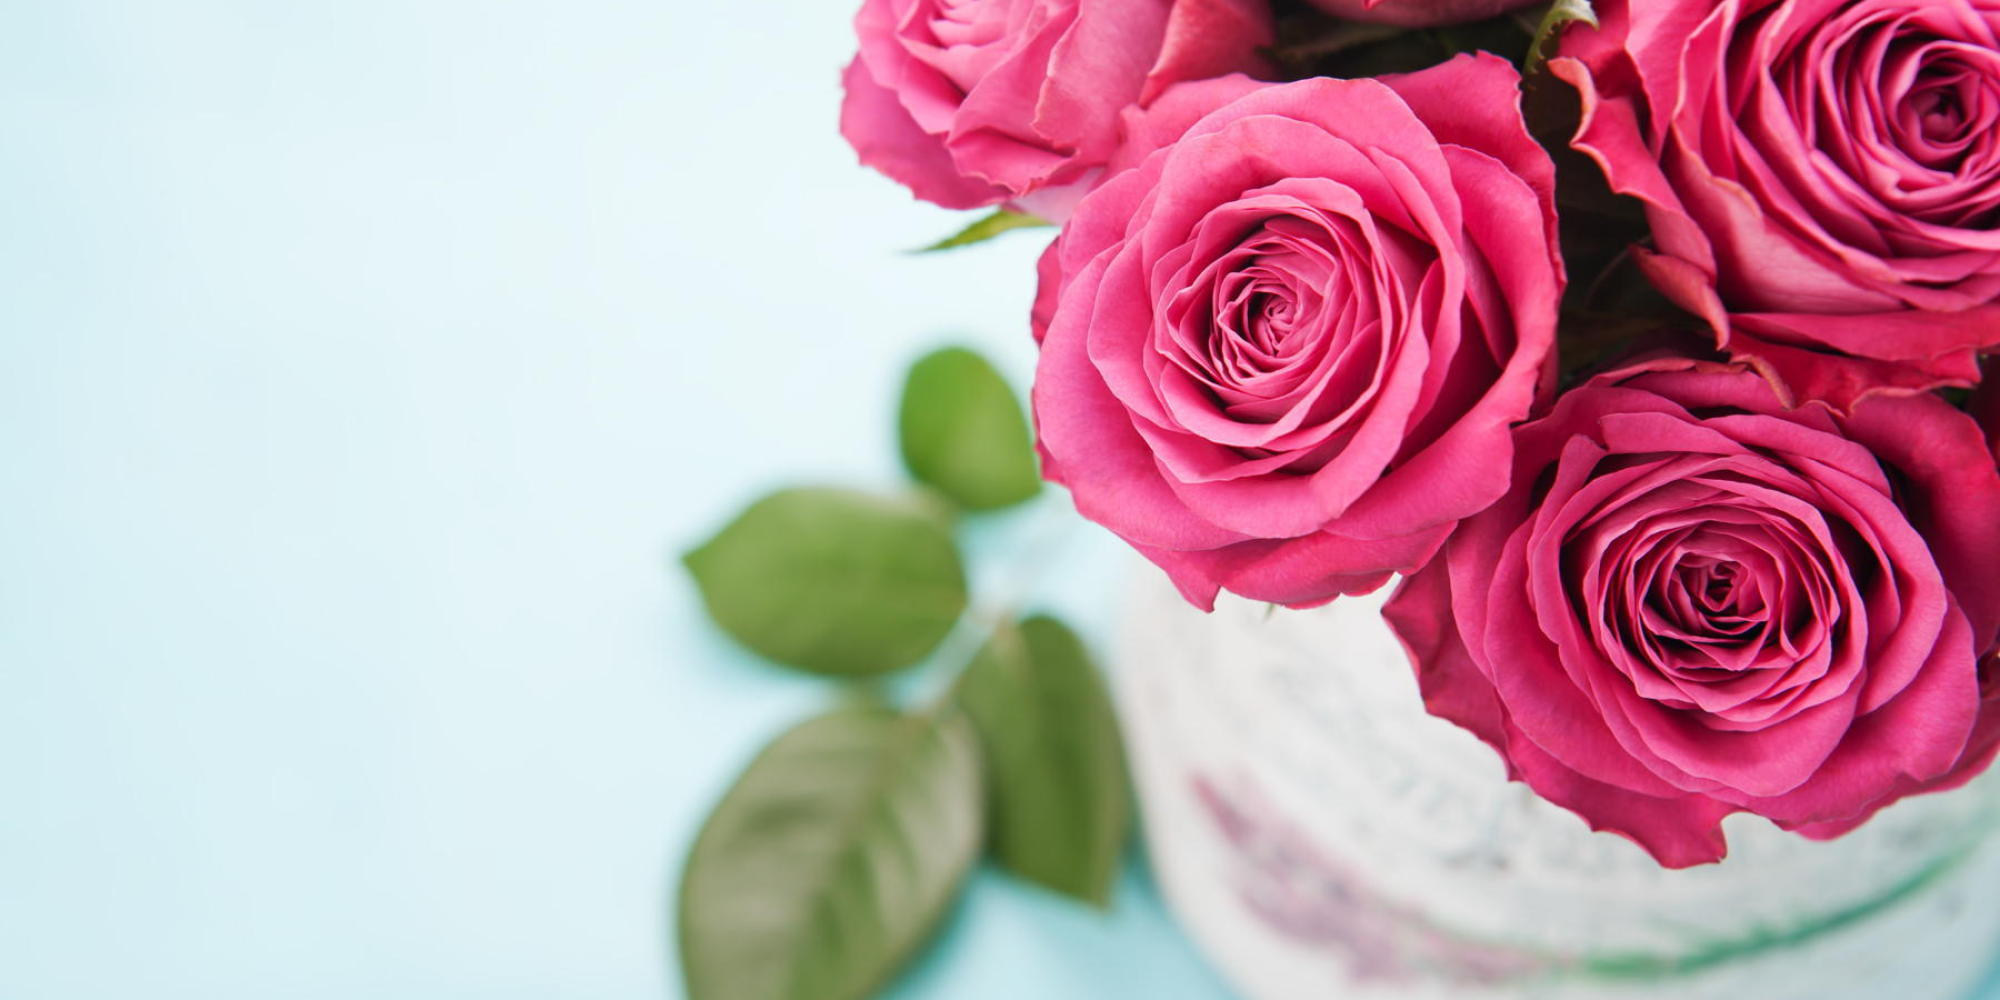 Cute Nail Arts Wallpaper 10 Things A Florist Won T Tell You Huffpost